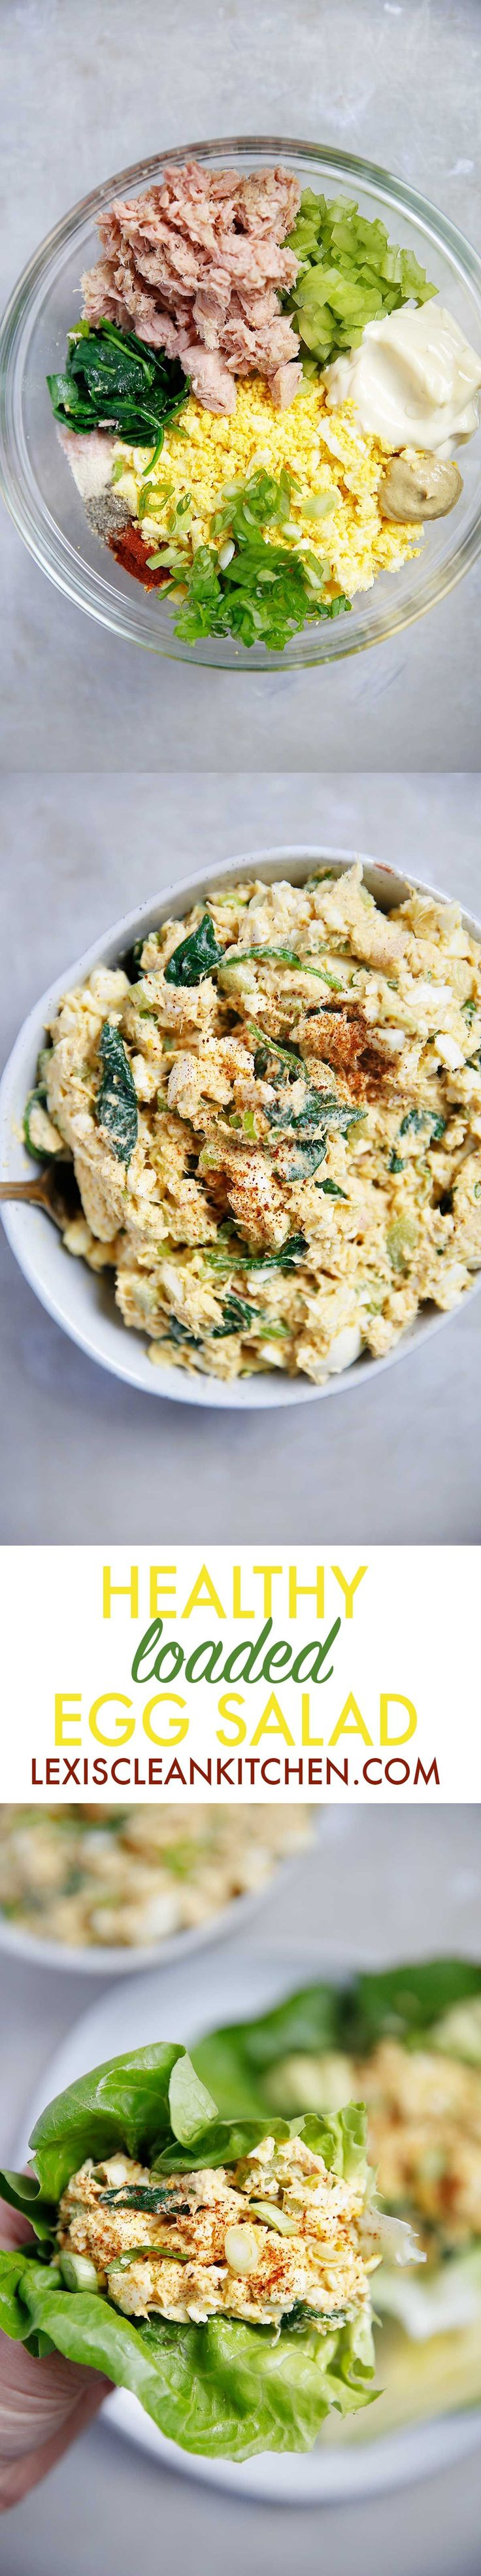 Loaded Egg Salad with Tuna {Paleo-friendly, gluten-free, grain-free, dairy-free, and low-carb} | Lexi's Clean Kitchen